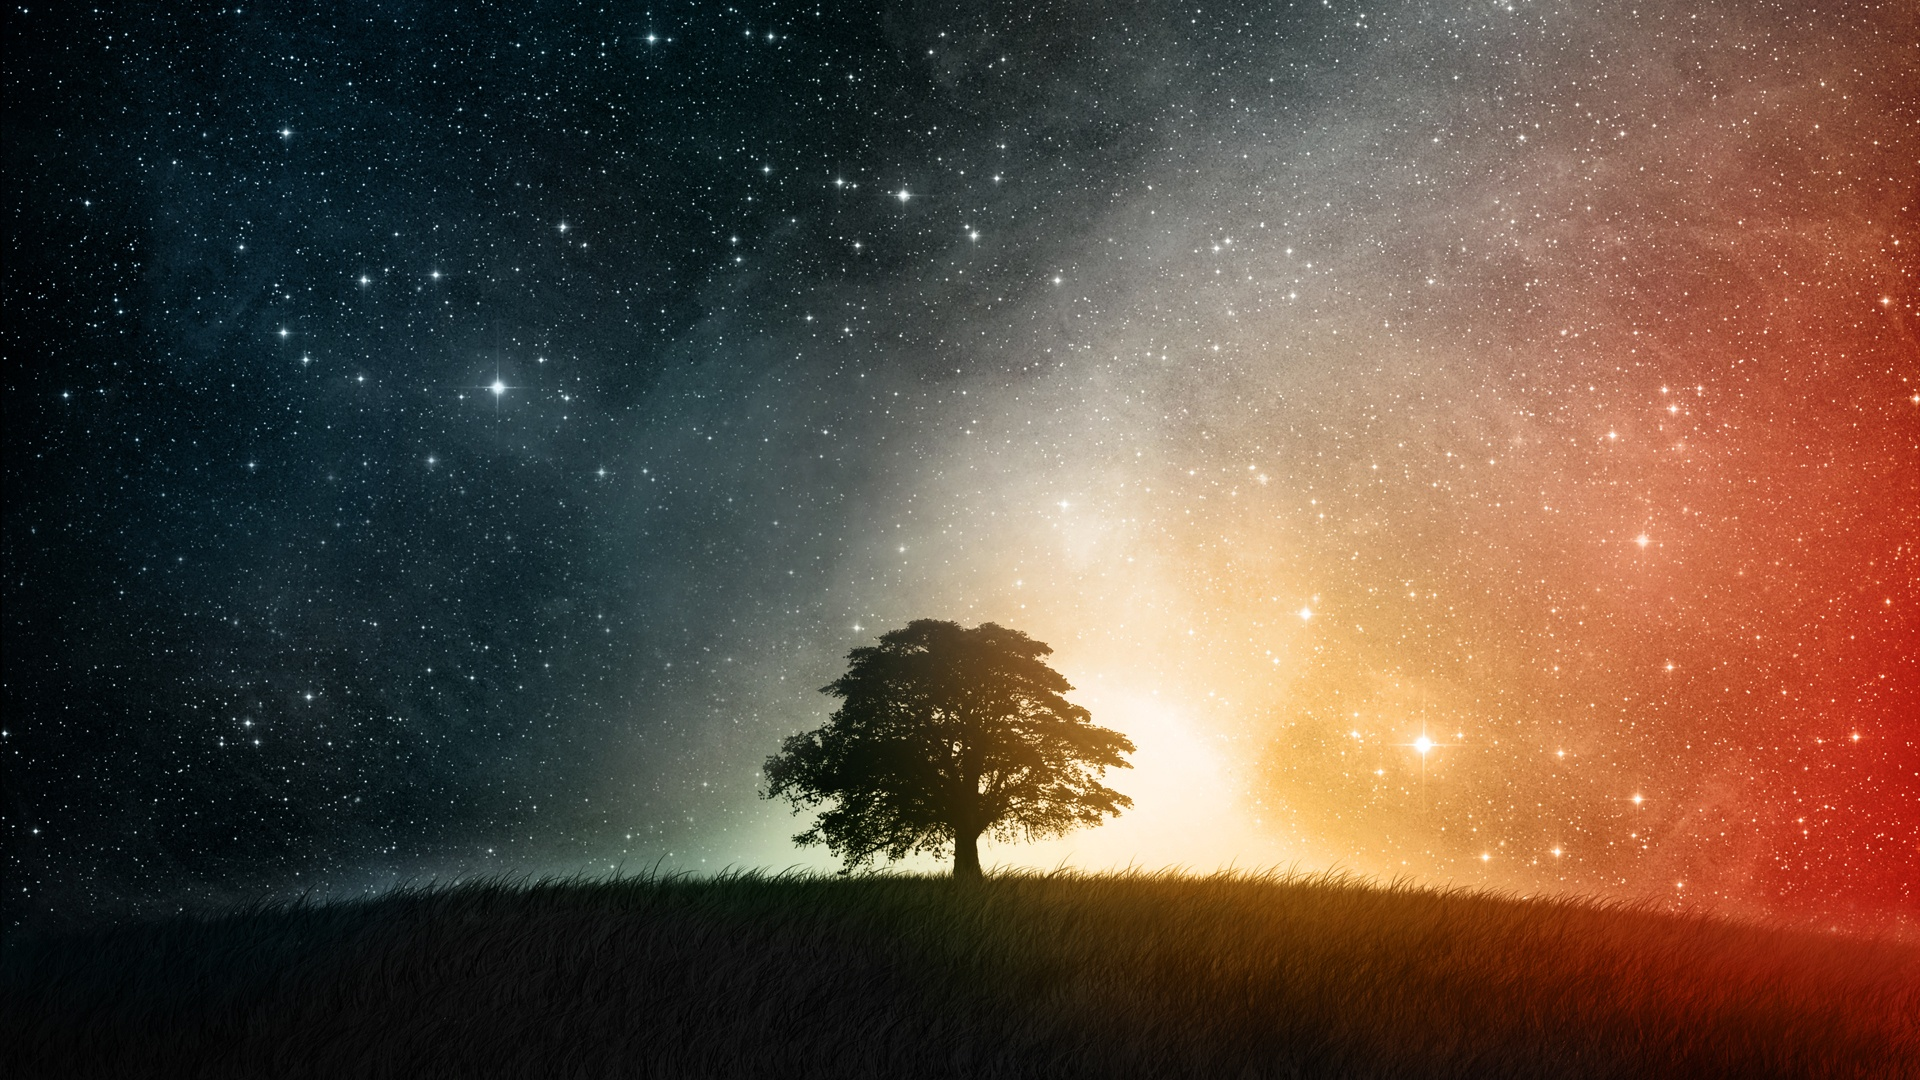 Starry Sky and a Tree Wallpaper Full HD 856.64 Kb